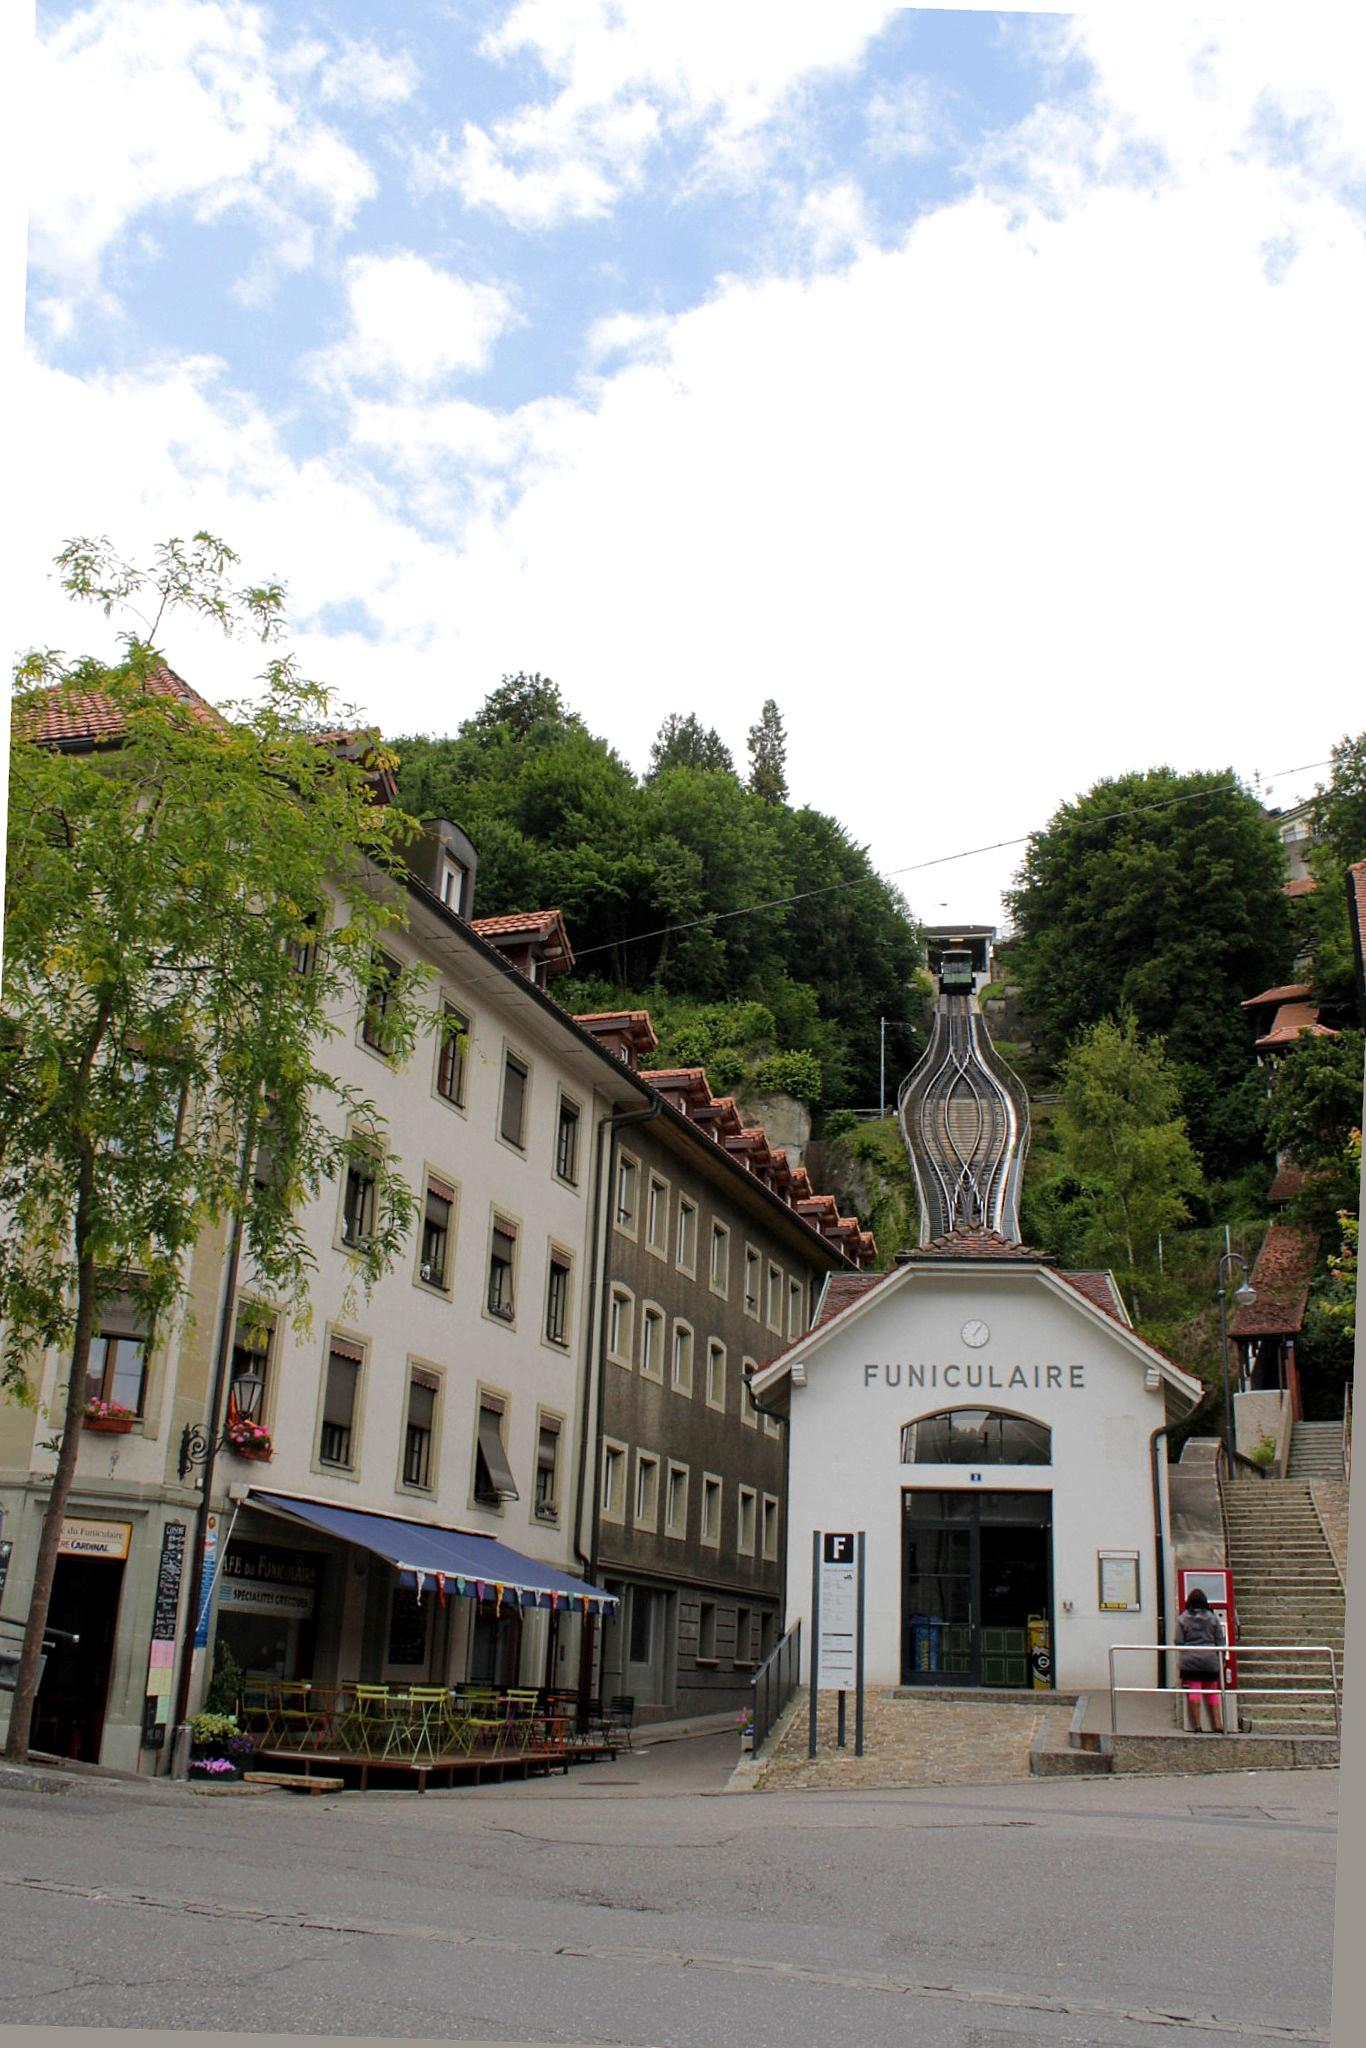 Funicular Lower Town to the city of Fribourg, Switzerland by Andre RAMSEYER